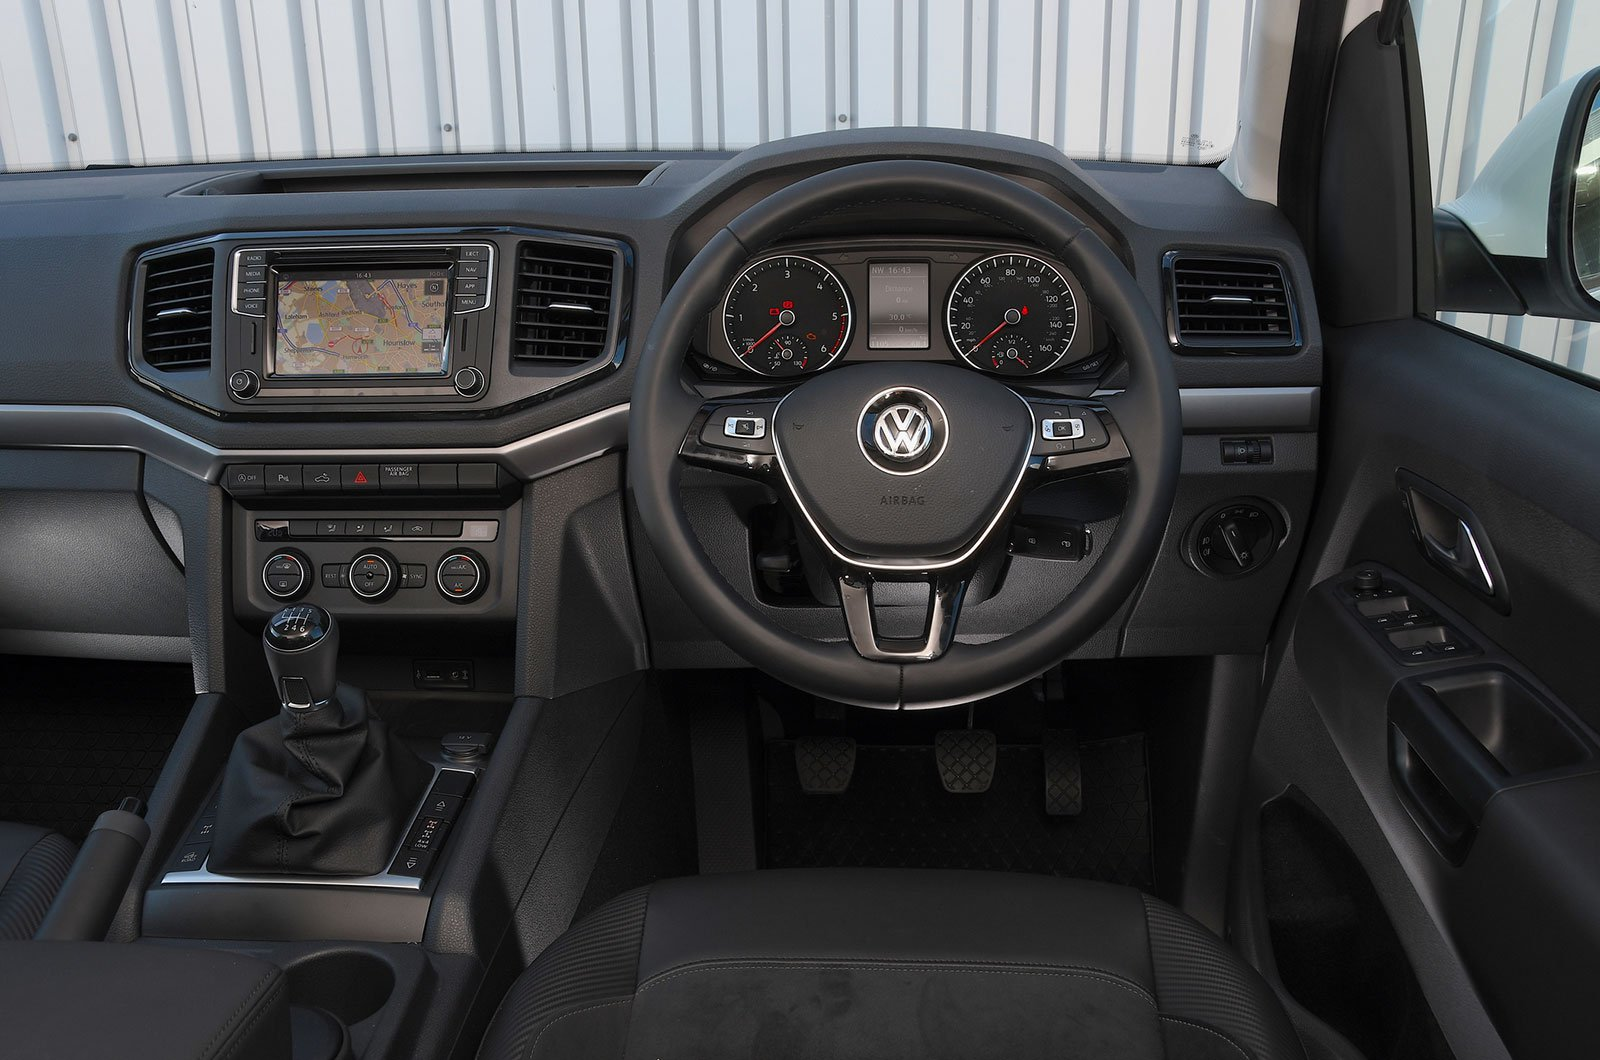 Volkswagen Amarok Interior Sat Nav Dashboard What Car